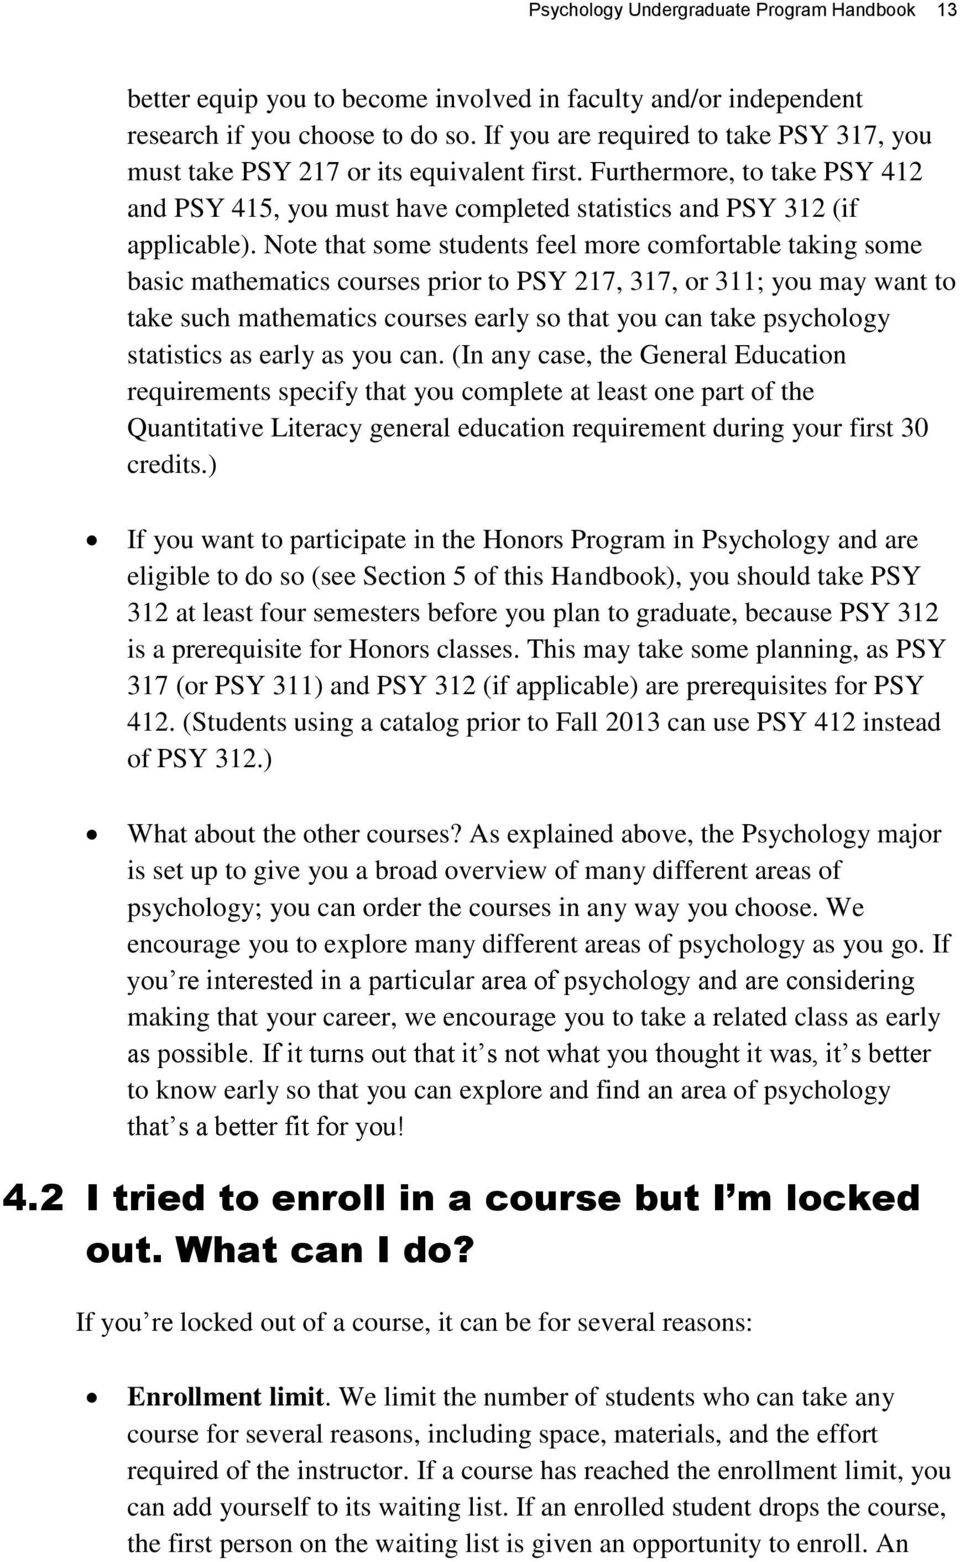 Note that some students feel more comfortable taking some basic mathematics courses prior to PSY 217, 317, or 311; you may want to take such mathematics courses early so that you can take psychology